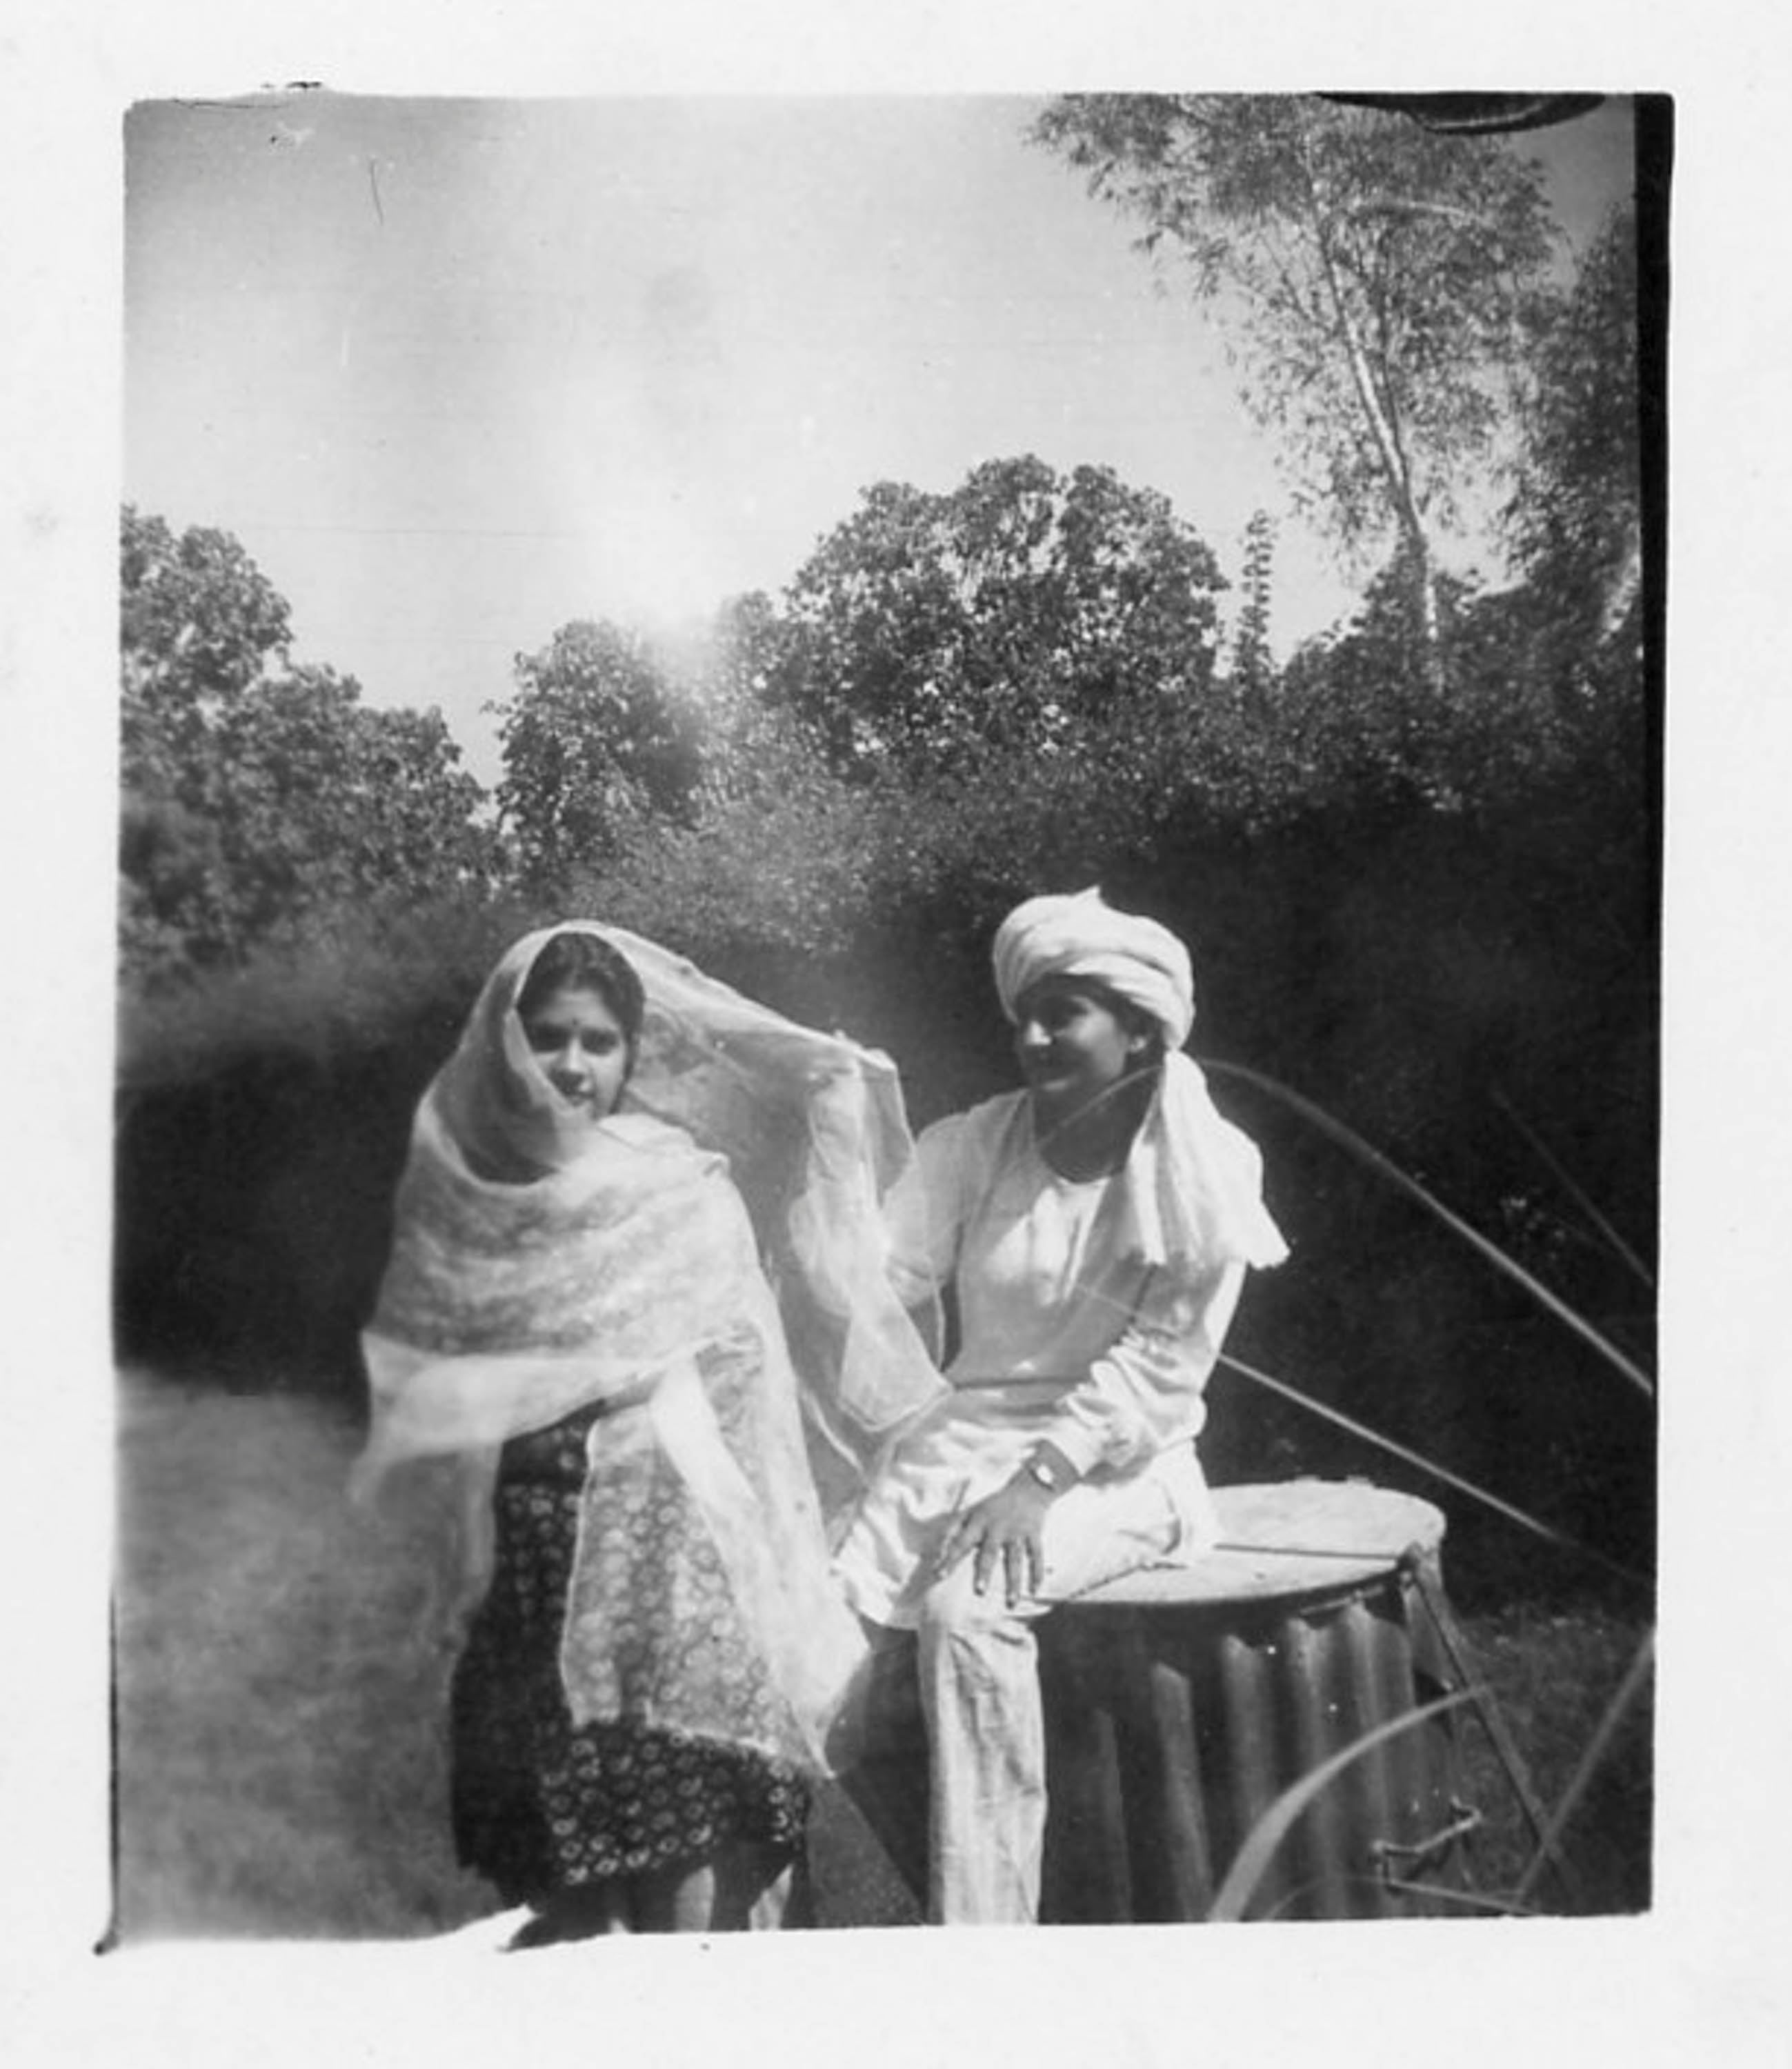 Black and white image of a young man and woman in a garden, in India. She wears a fine shawl around her head and shoulders, he wears white scarf around his head